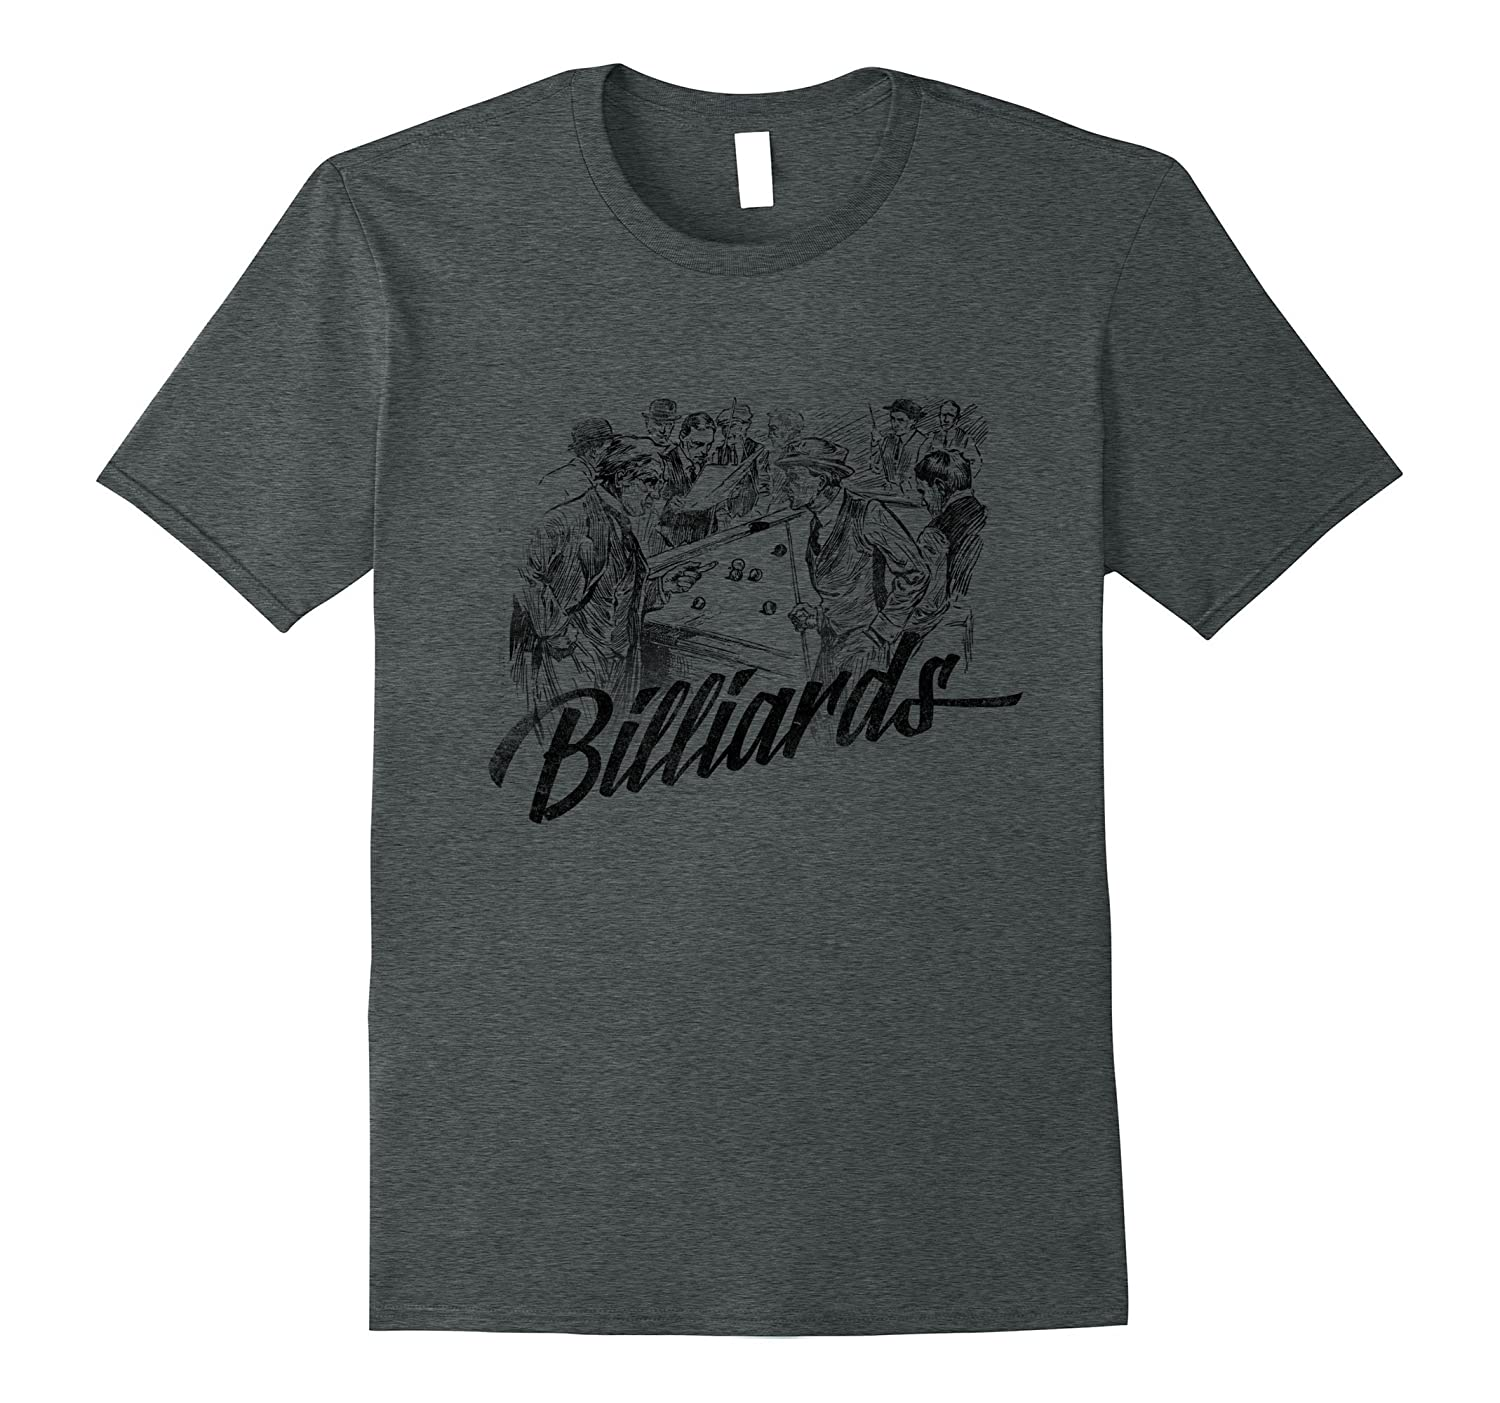 Billiards Lovers Retirement Accessories Funny Gifts T Shirt-CL